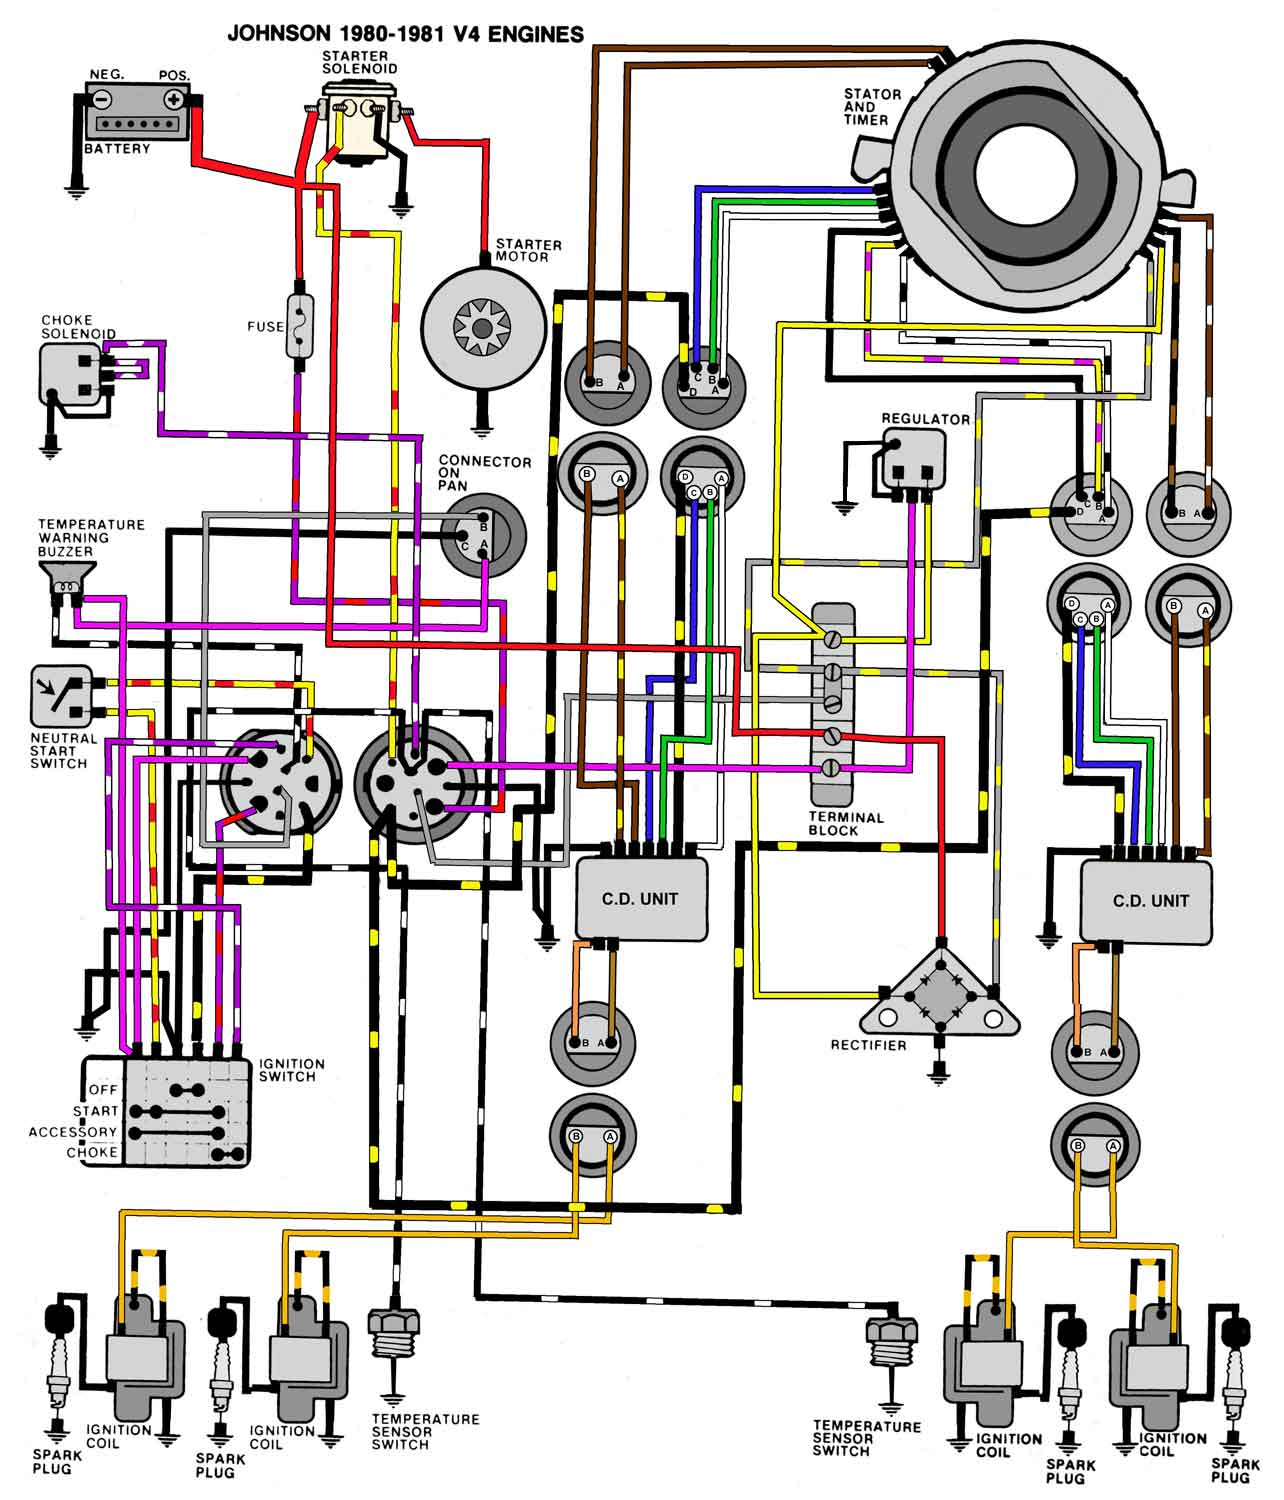 70 hp johnson ignition switch wiring diagram johnson outboard ignition switch wiring diagram evinrude johnson outboard wiring diagrams -- mastertech ... #3